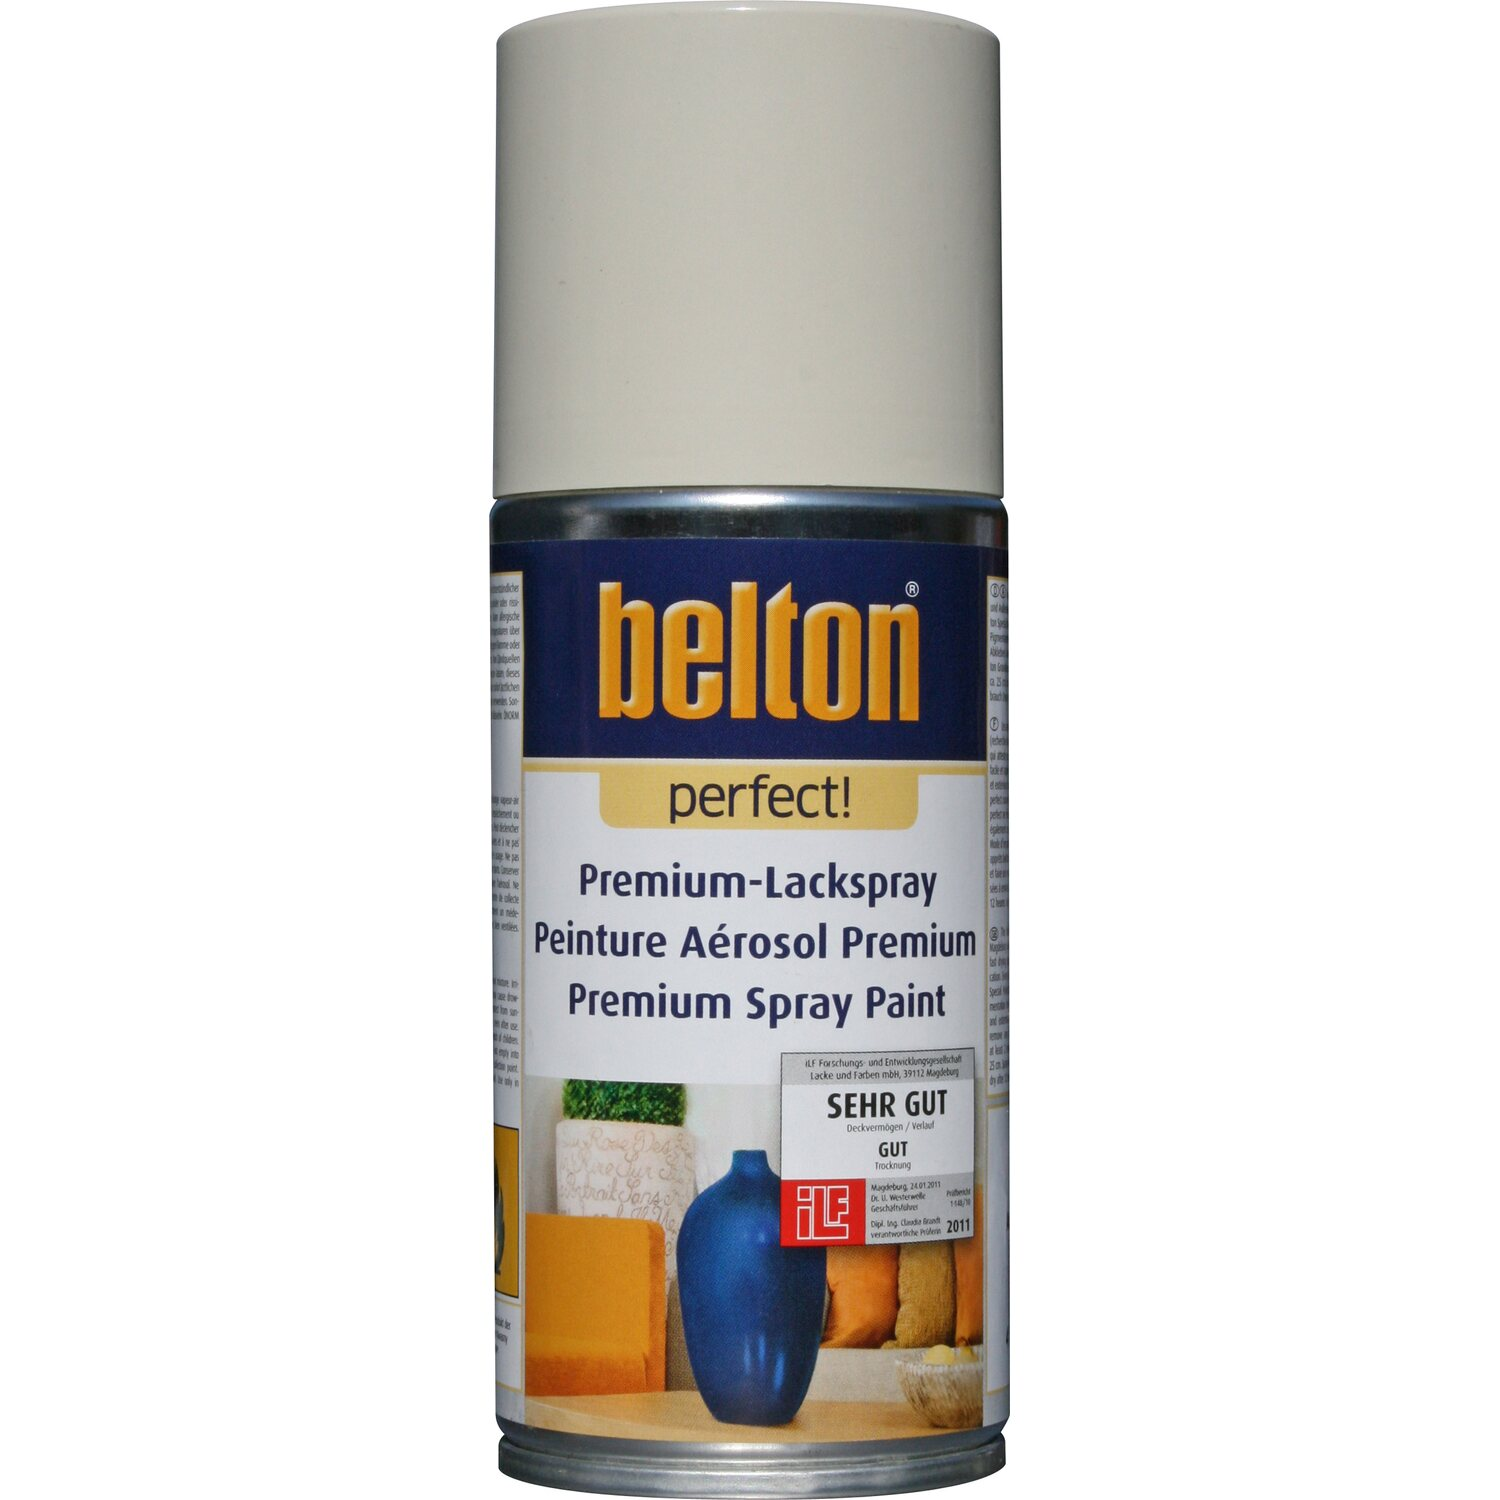 Belton Perfect Premium-Lackspray Weiß seidenmatt 150 ml